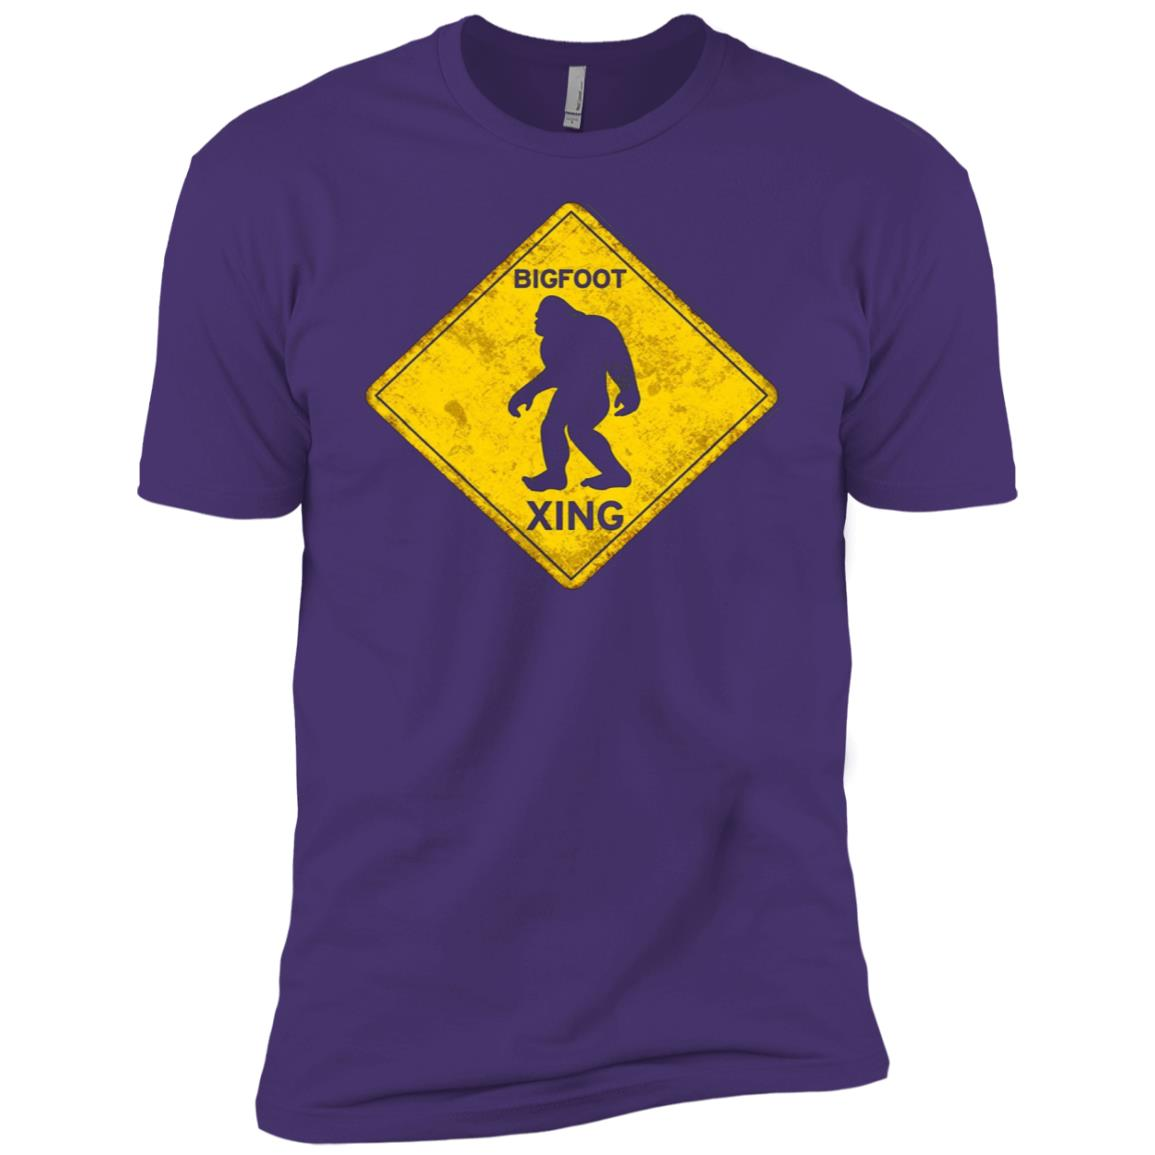 Bigfoot Crossing Xing Vintage Old Rusted Sign Novelty Tee Men Short Sleeve T-Shirt